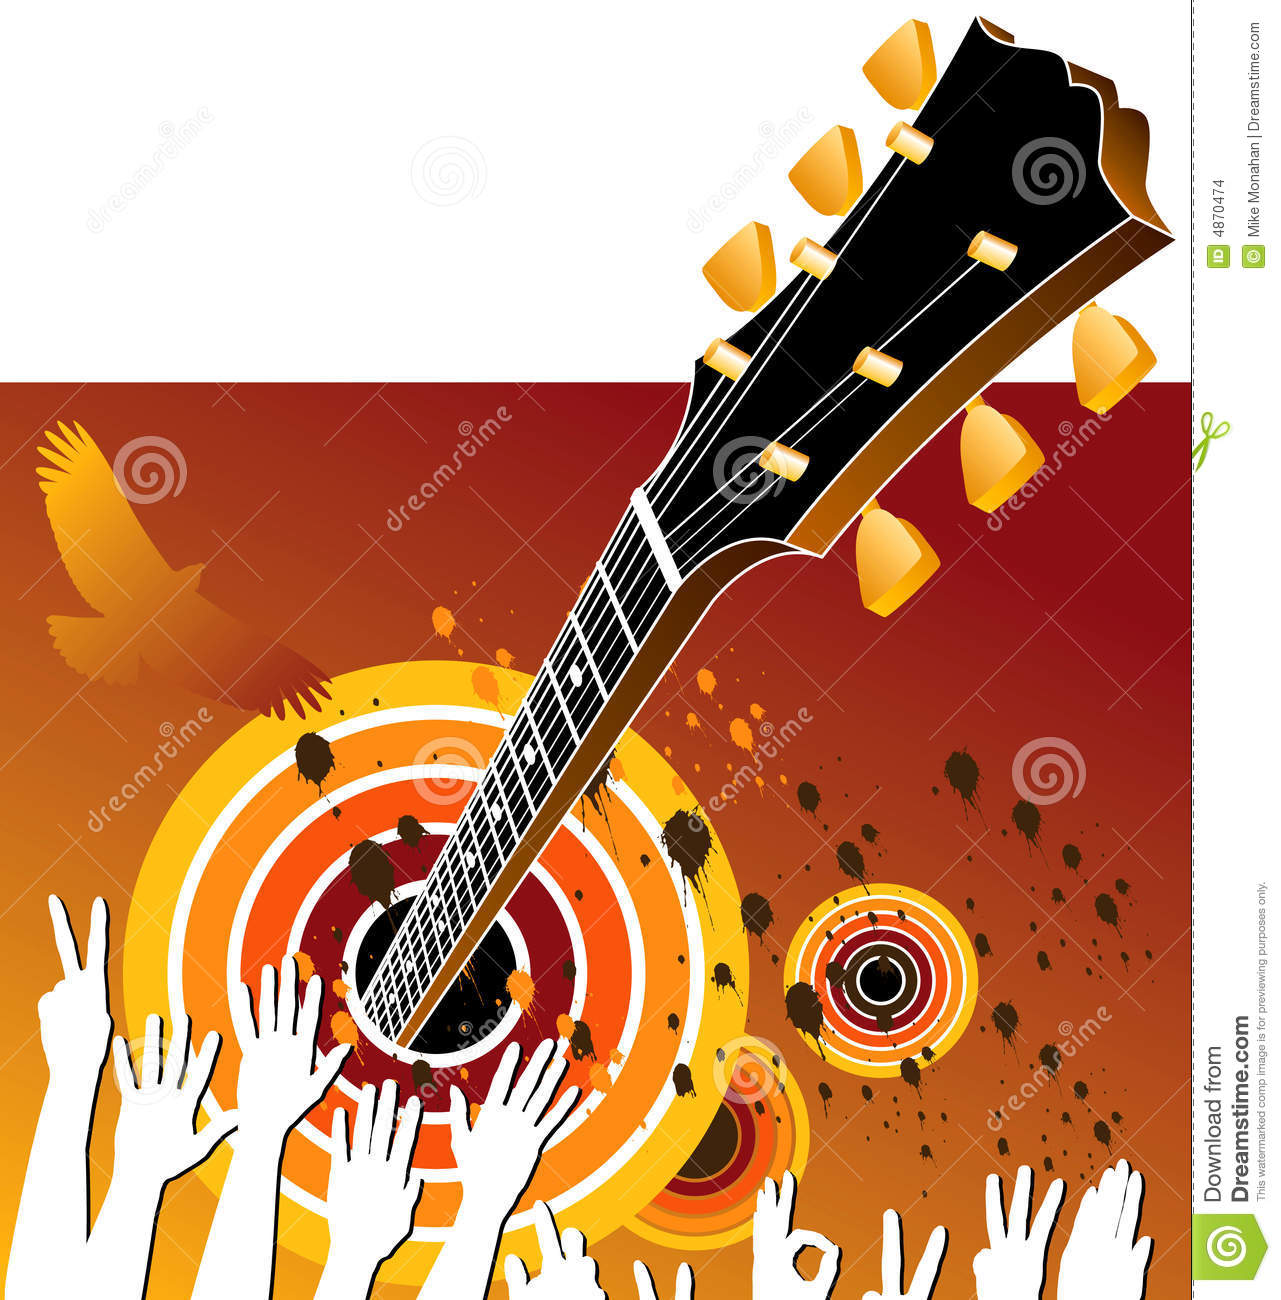 Music: Concert Music Background Stock Images